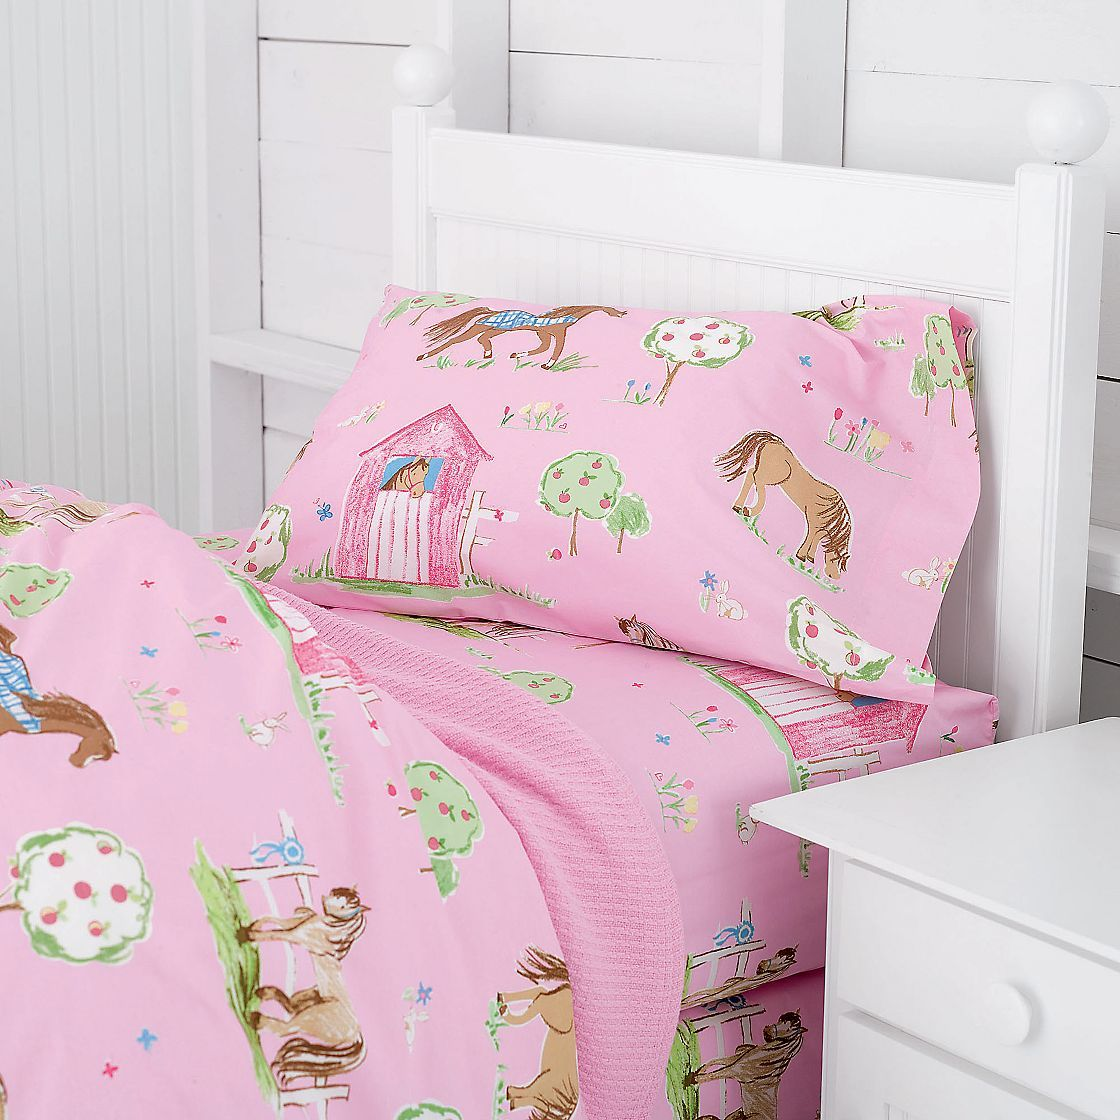 Sheets For Hadley S Cowgirl Room Cowgirl Bedroom